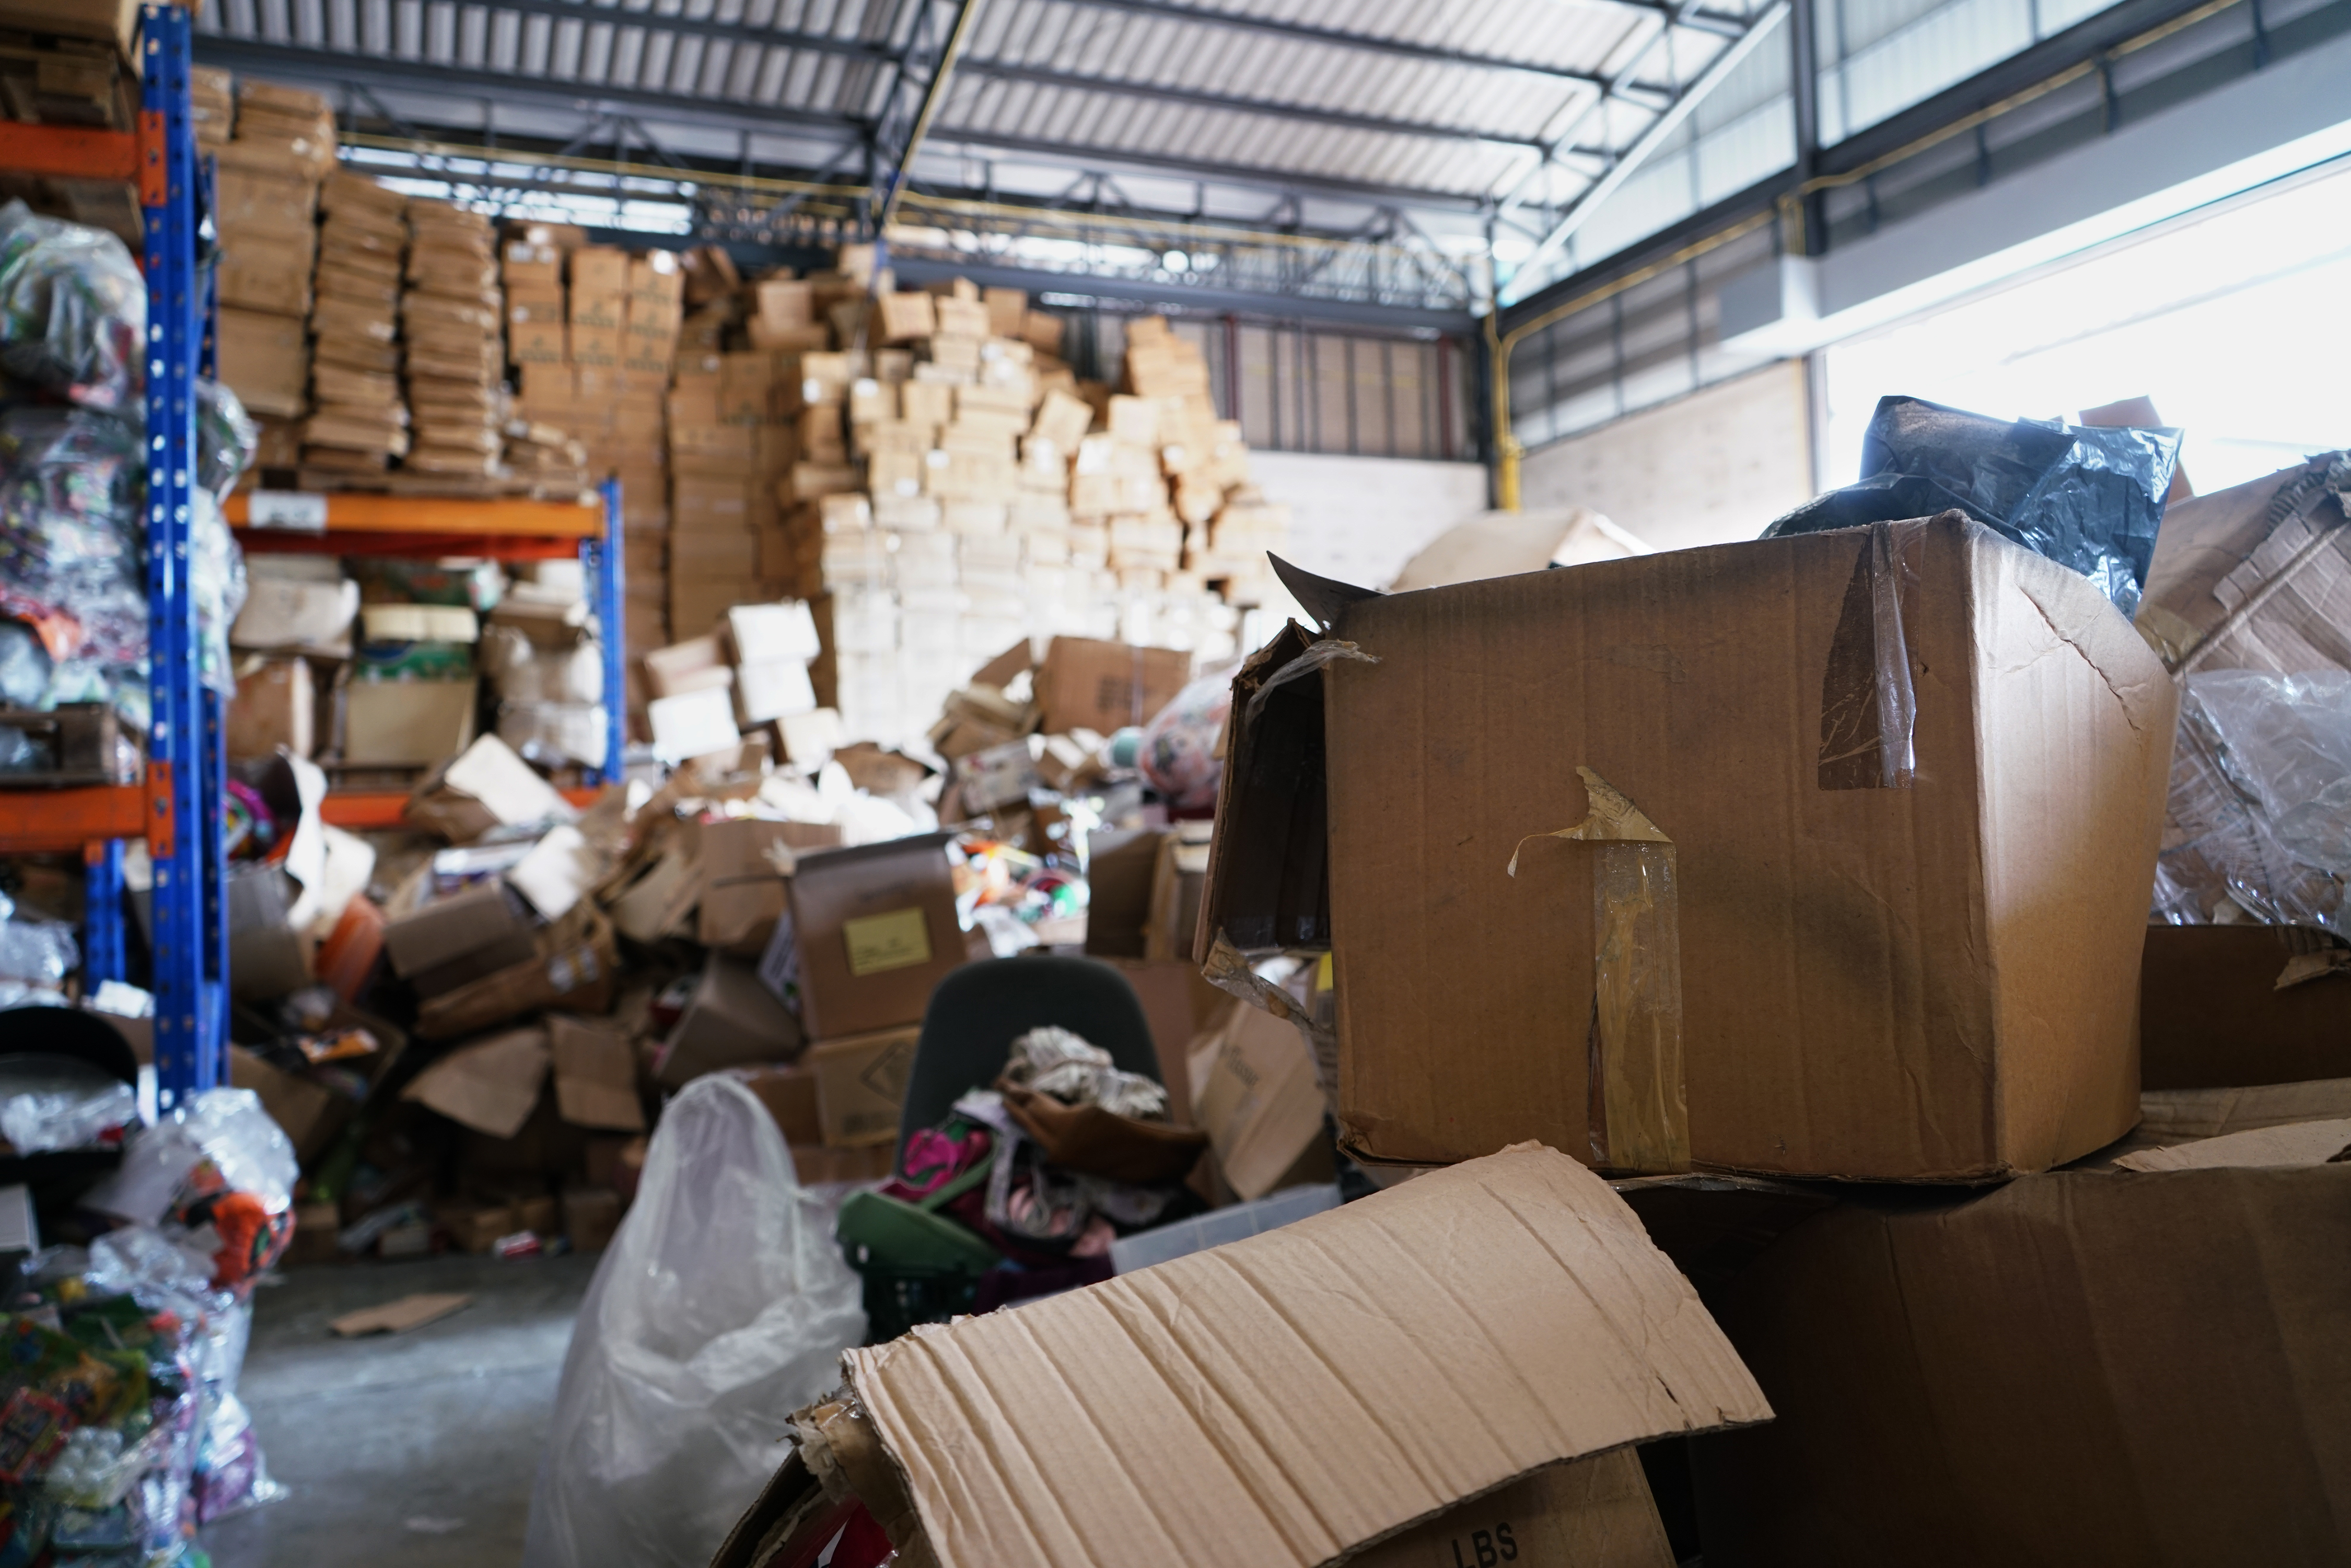 Warehouse Theft - Unorganized and Untidy